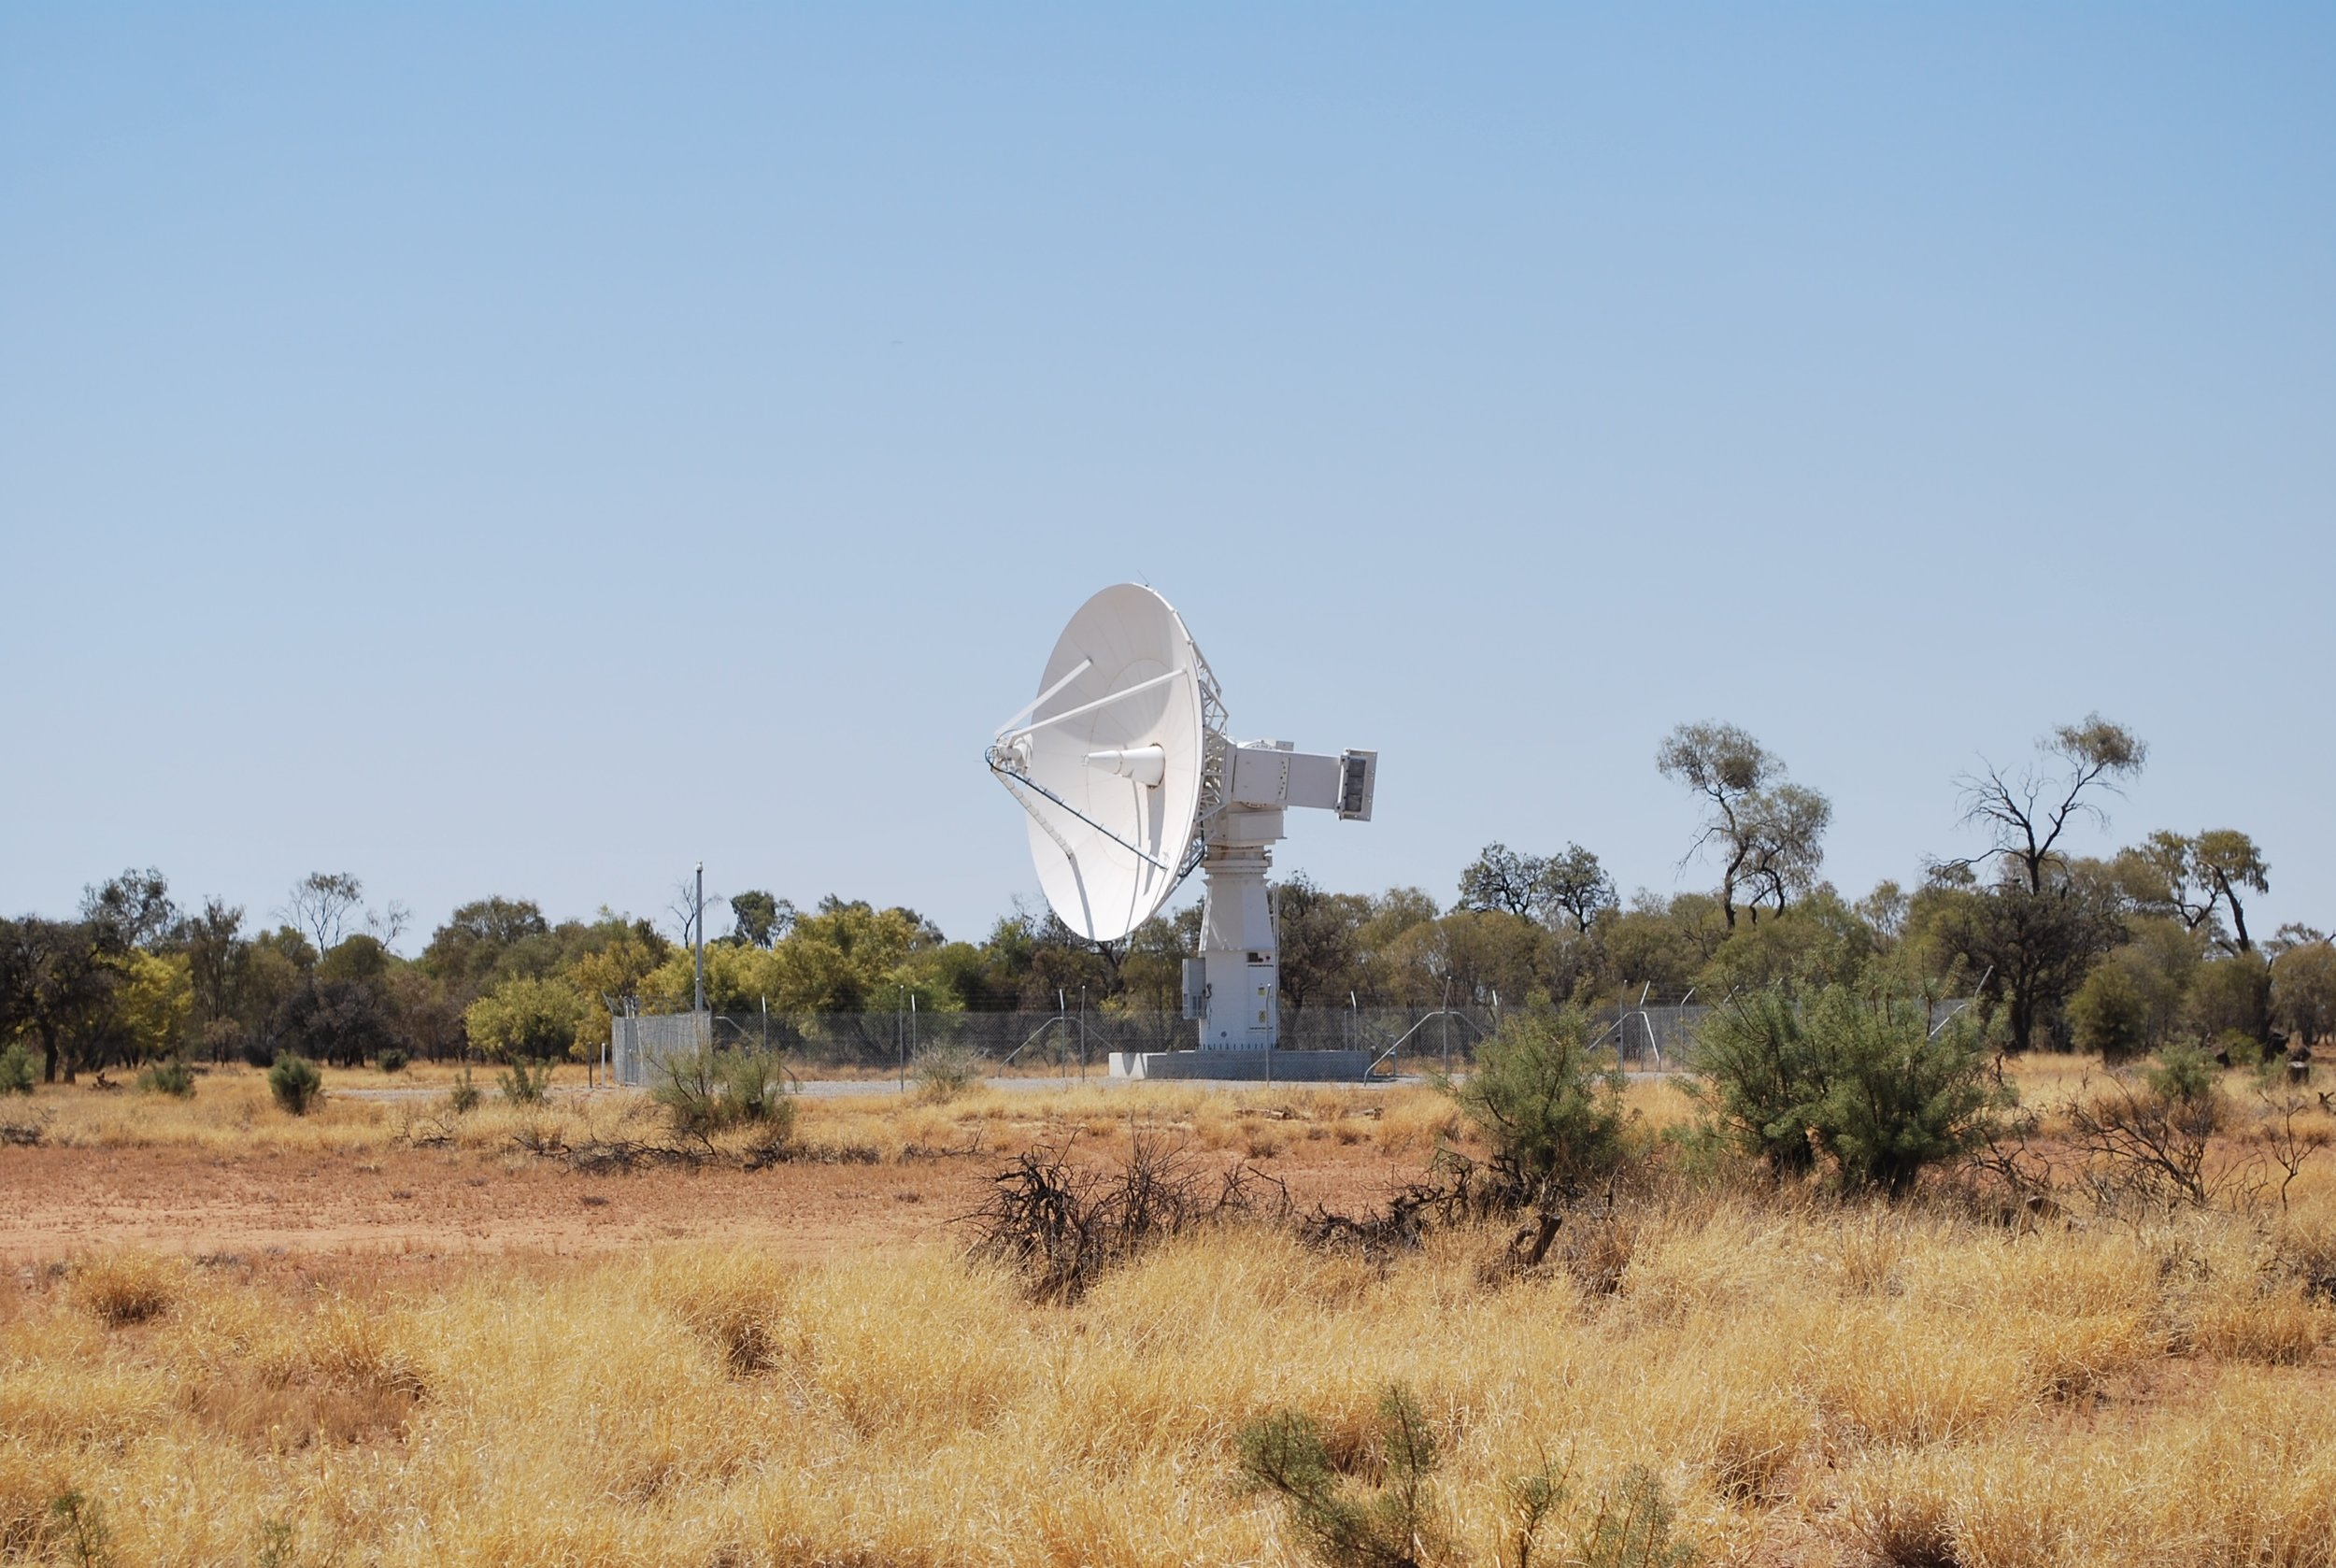 MEDIA RELEASE: REAL-TIME EARTH GROUND STATION